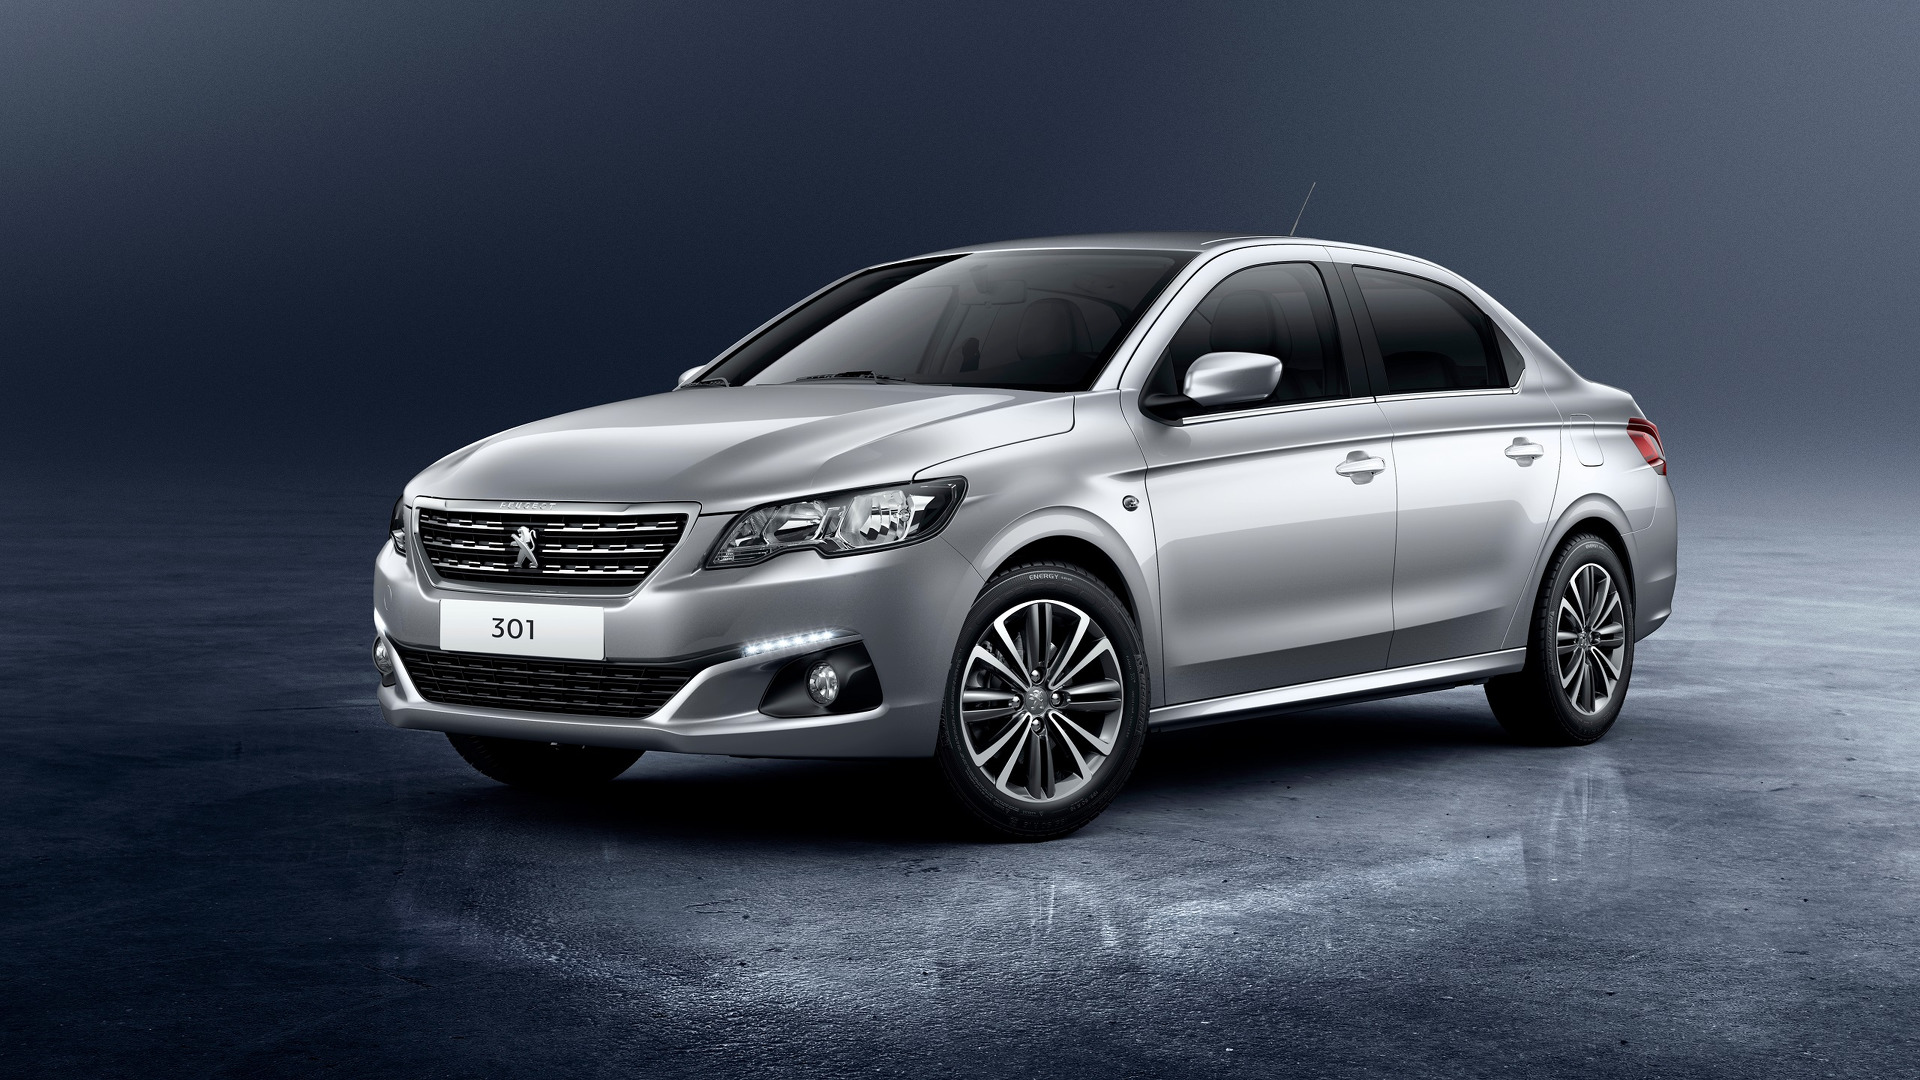 2018 peugeot 301. delighful 301 to 2018 peugeot 301 e